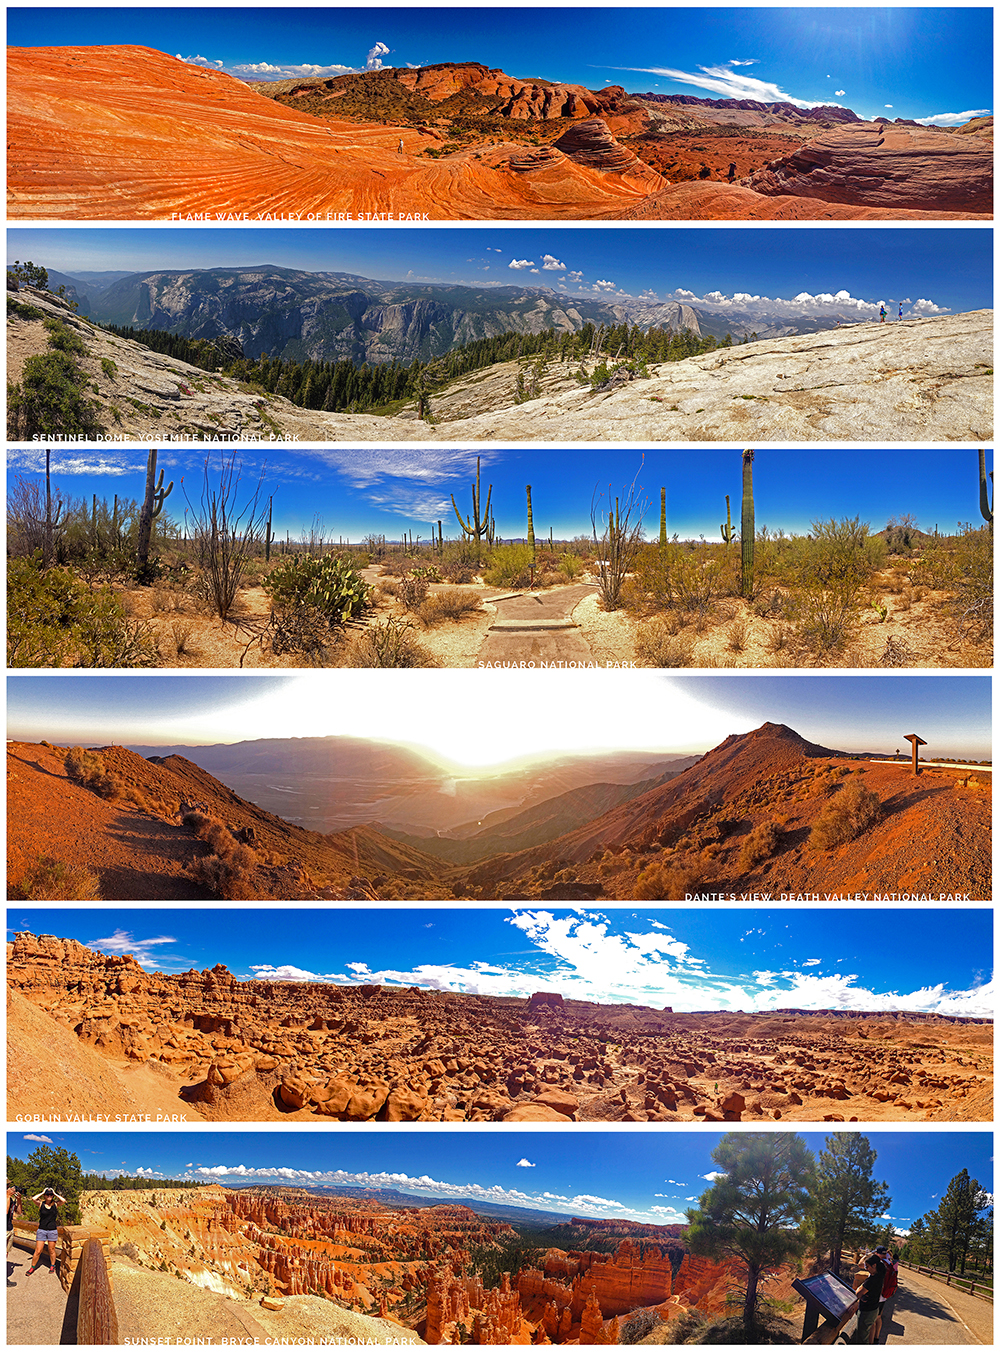 American Southwest 2014 Panorama Poster_04_2